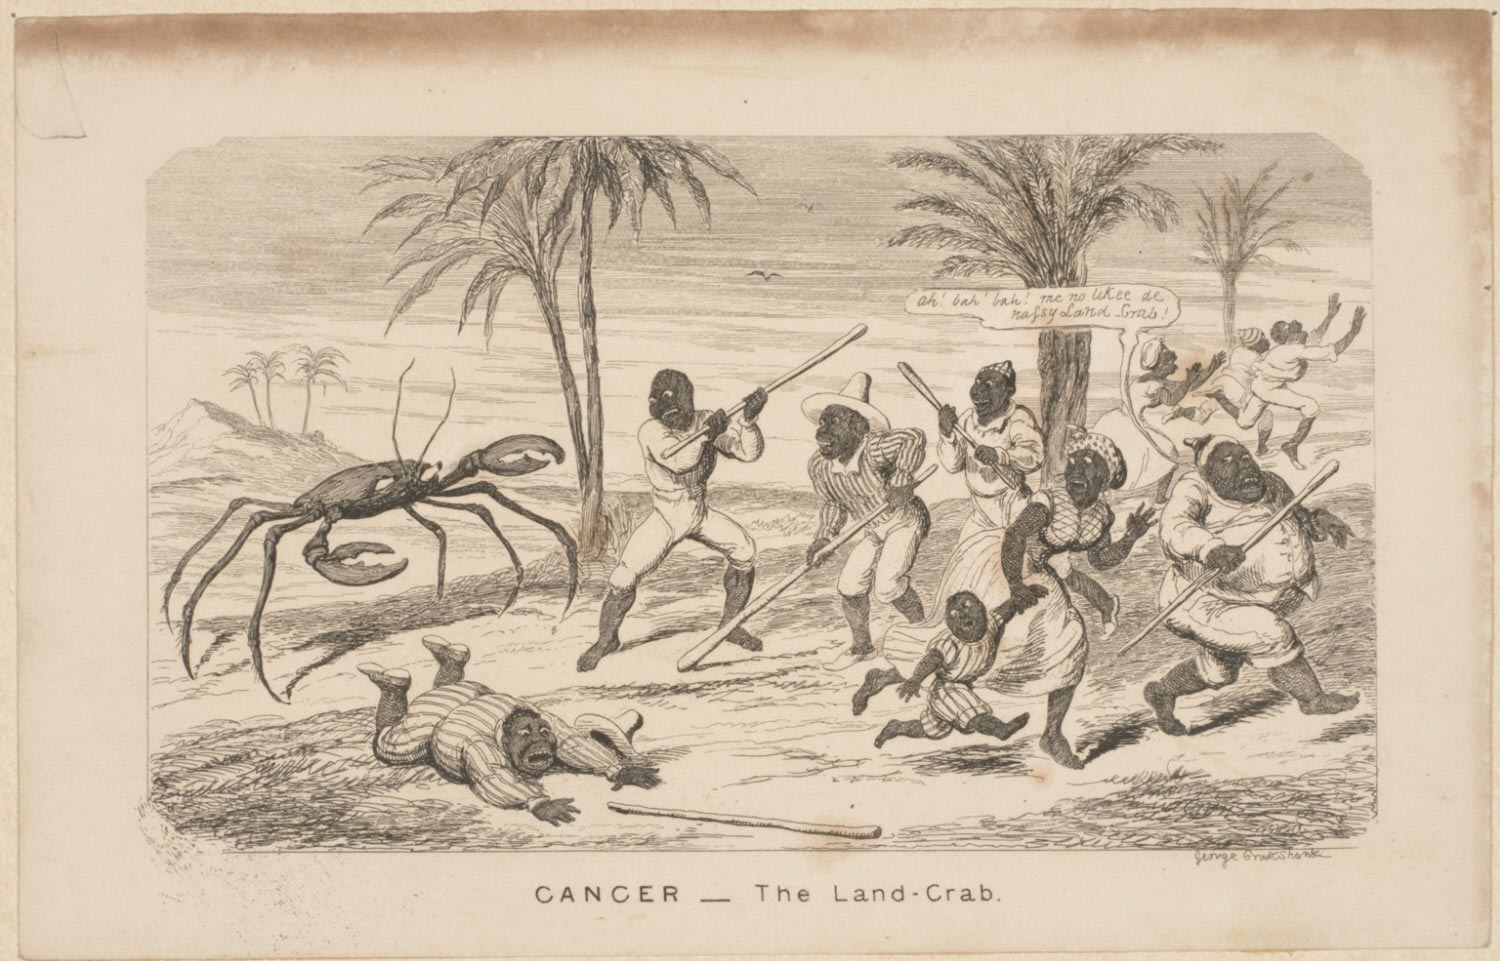 Cancer (The Land-Crab)